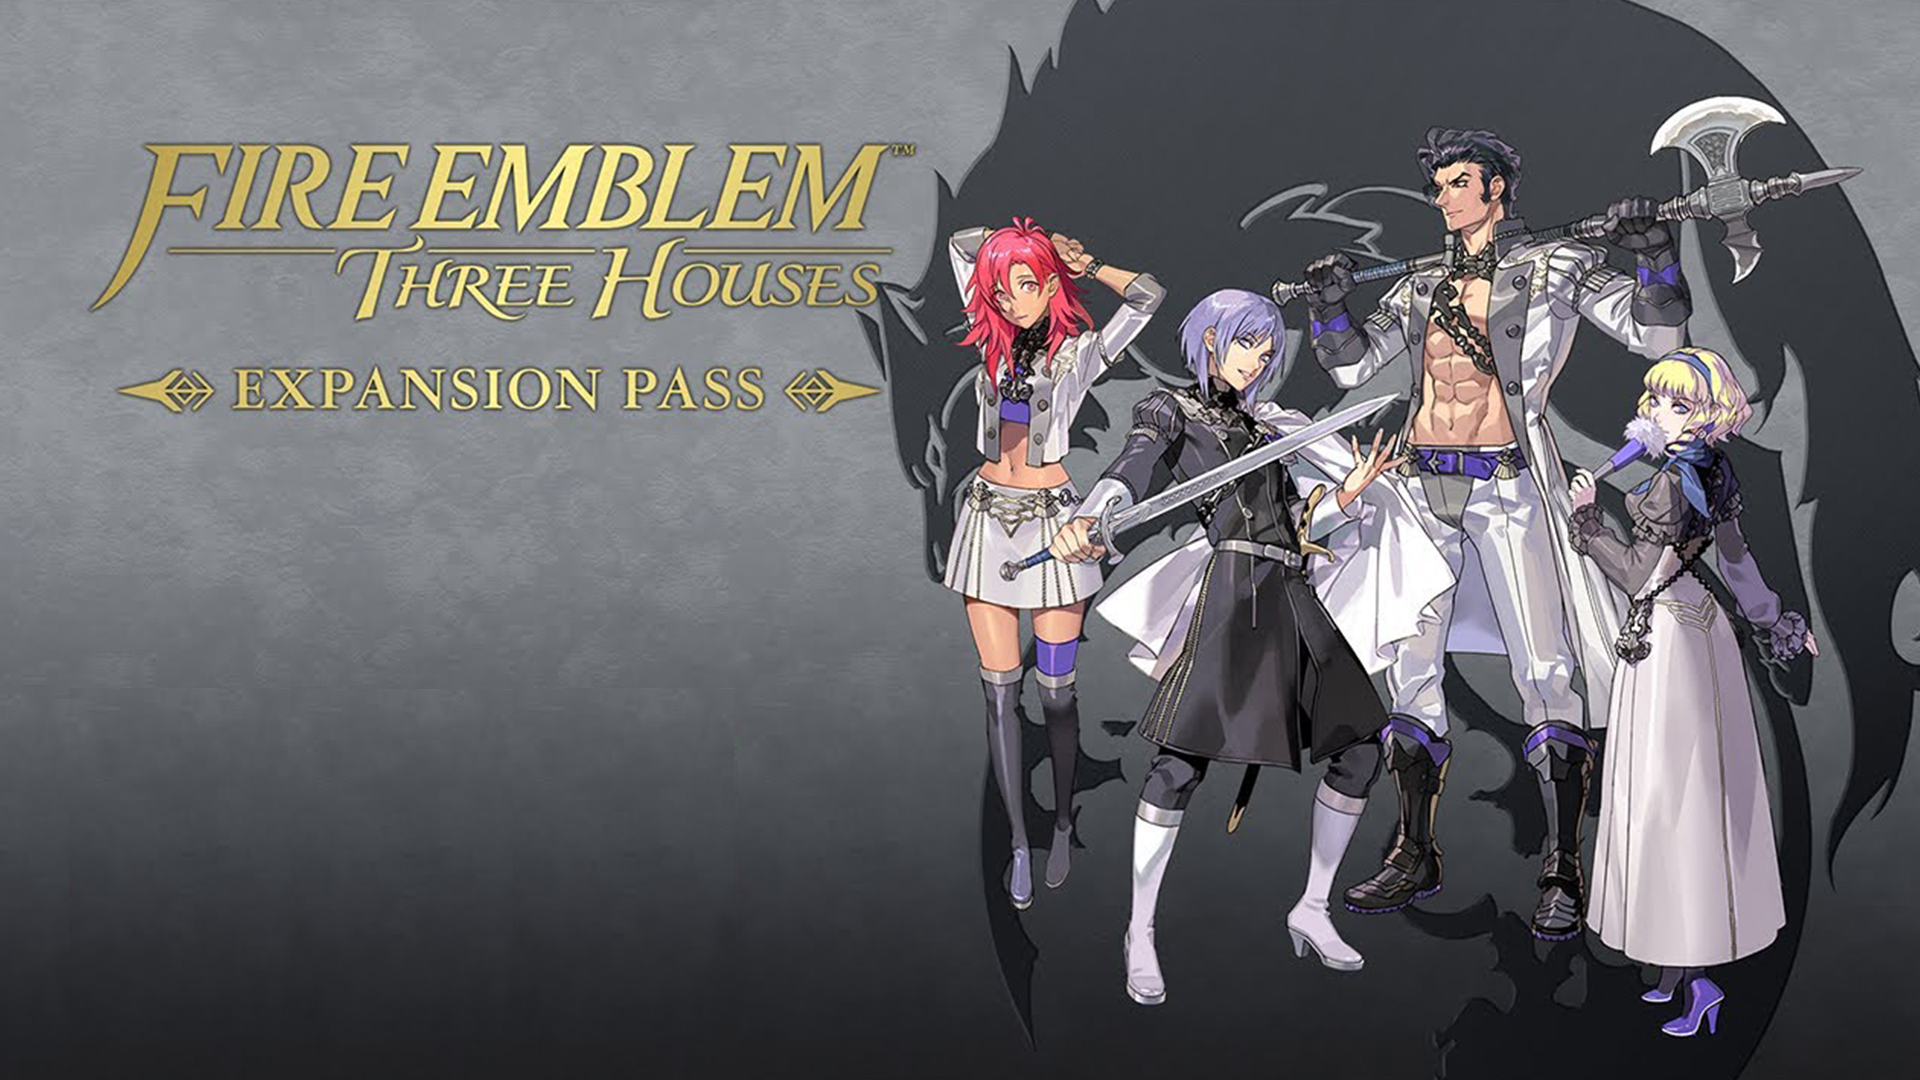 Cindered Shadows Arrives In Fire Emblem Three Houses Today Maxi Geek